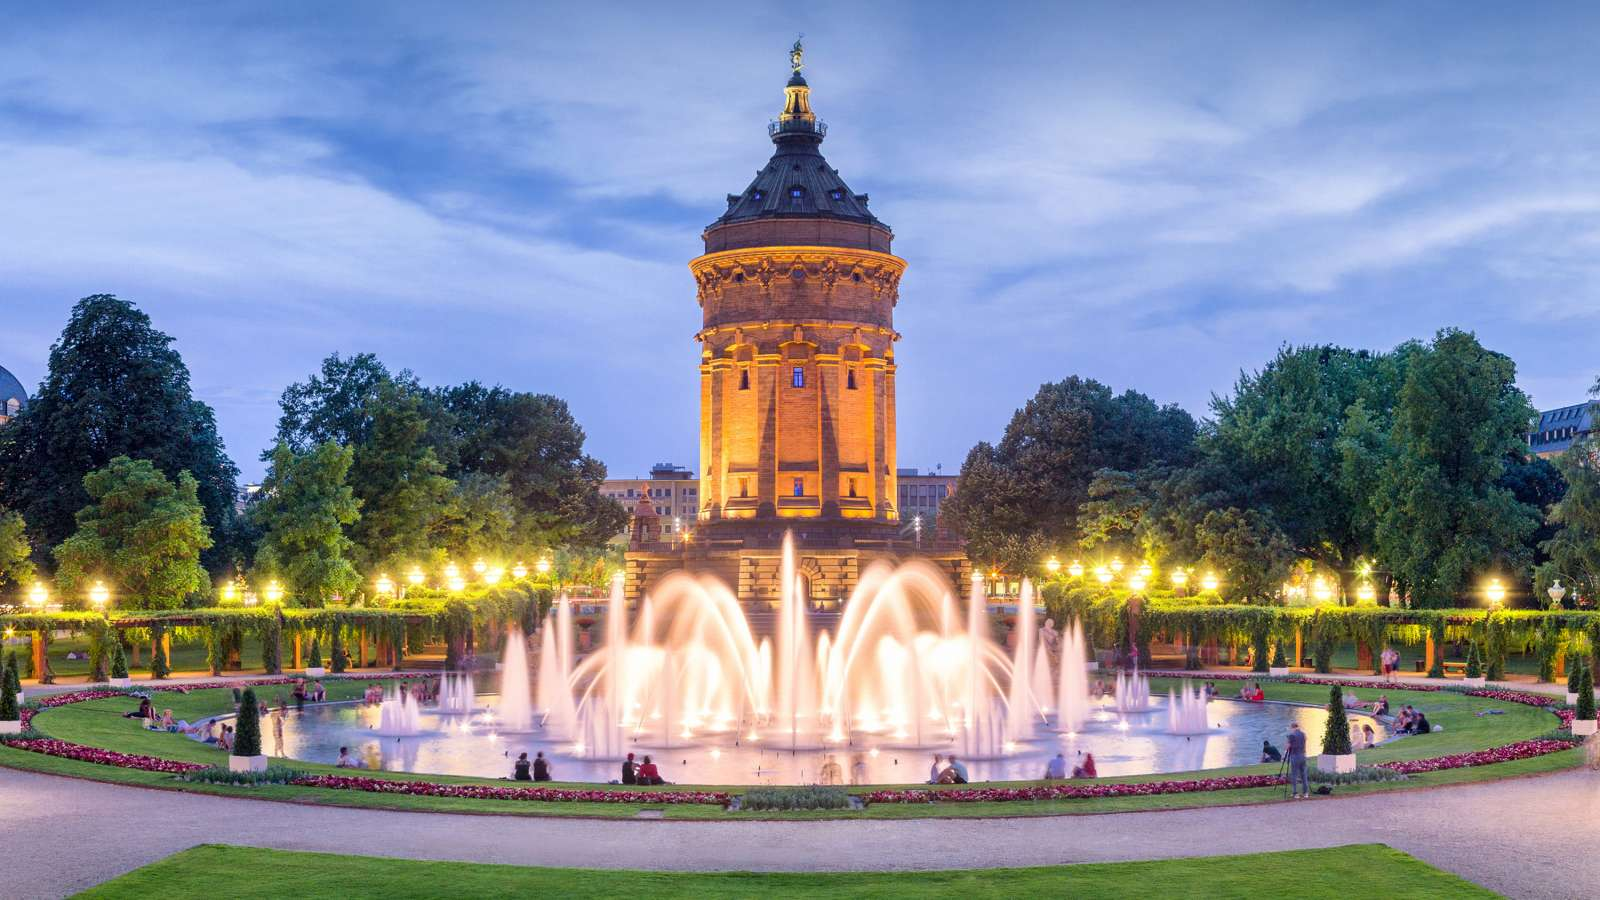 Centro Hotels In The City Of Mannheim